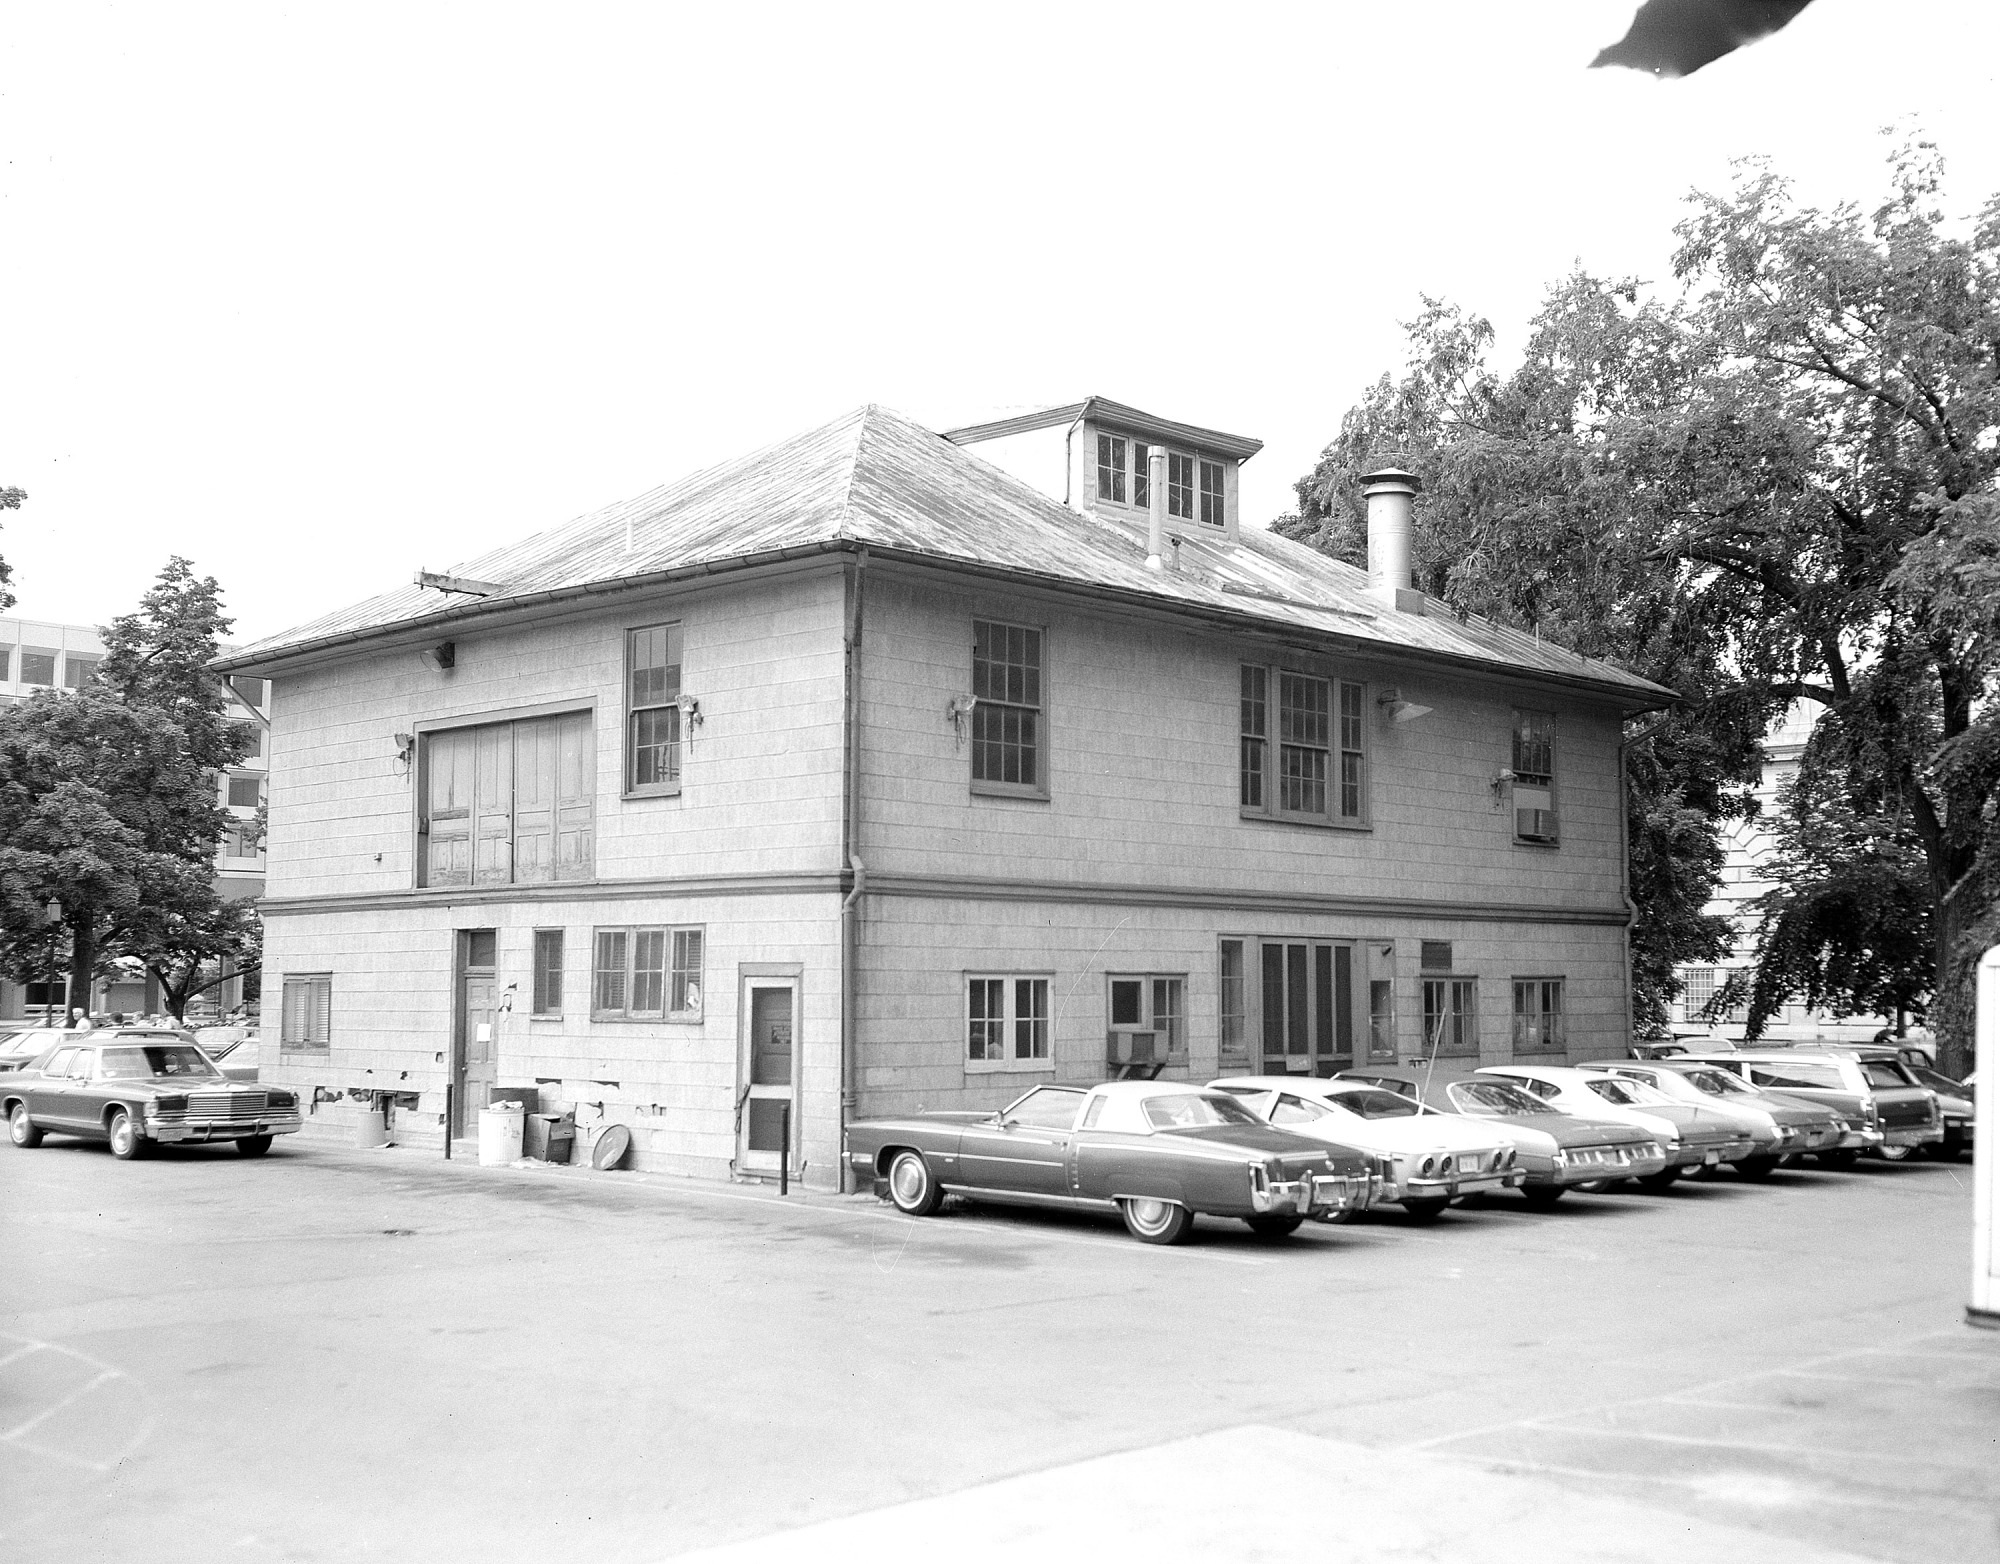 Exterior of the South Shed, 1975, by Unknown, 1975, Smithsonian Archives - History Div, 75-6938.